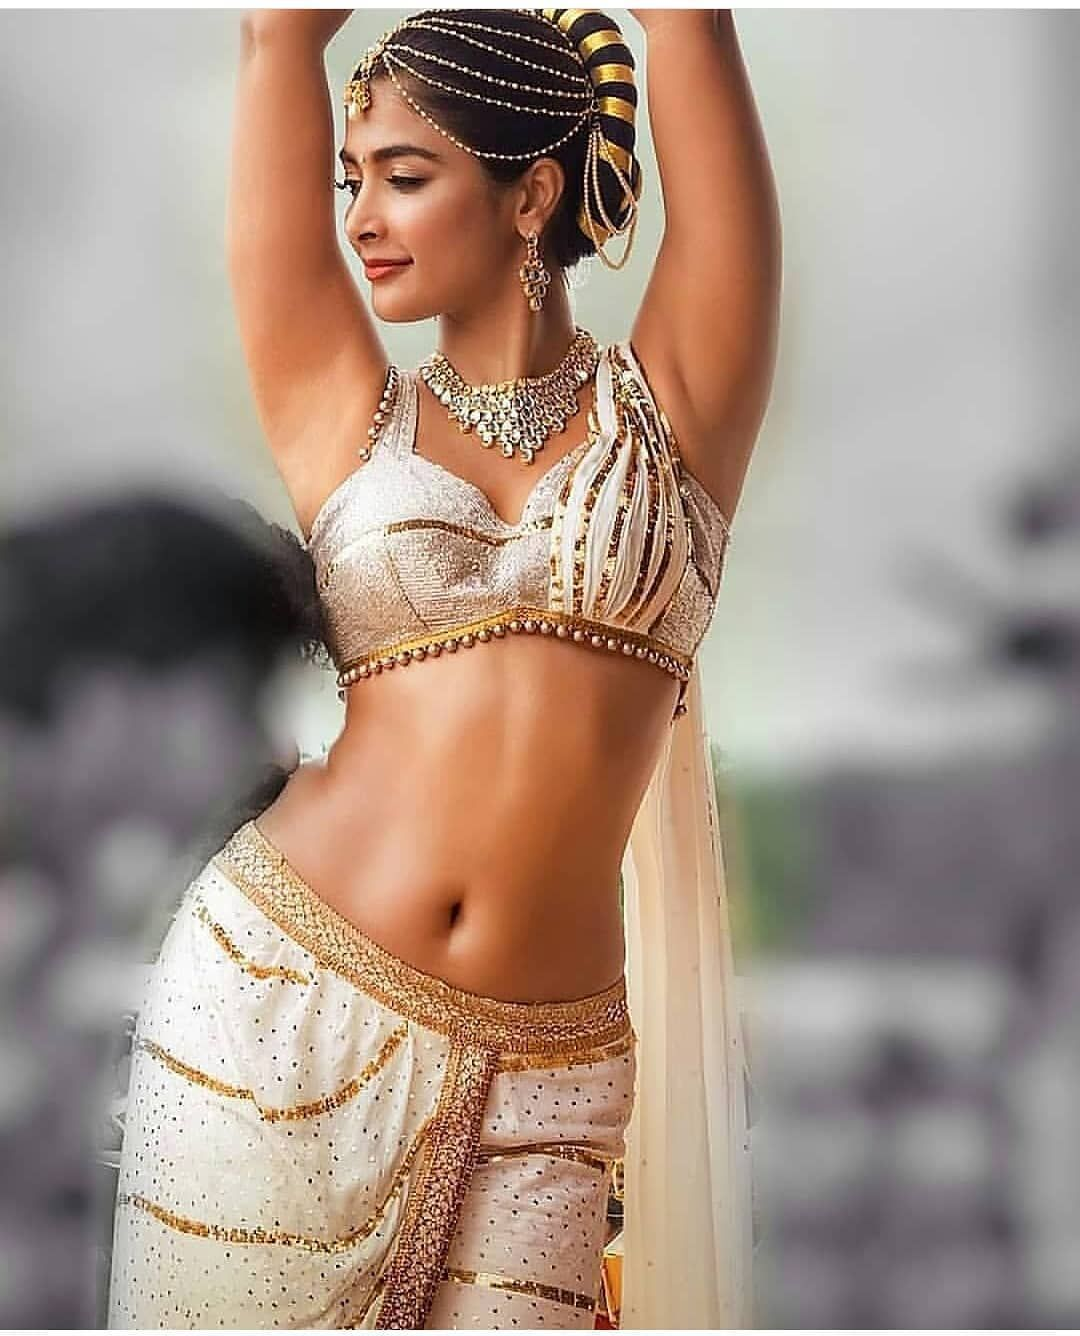 Pooja Hegde Beautiful HD Wallpapers Best Pictures, Images & Photos 1080p HD